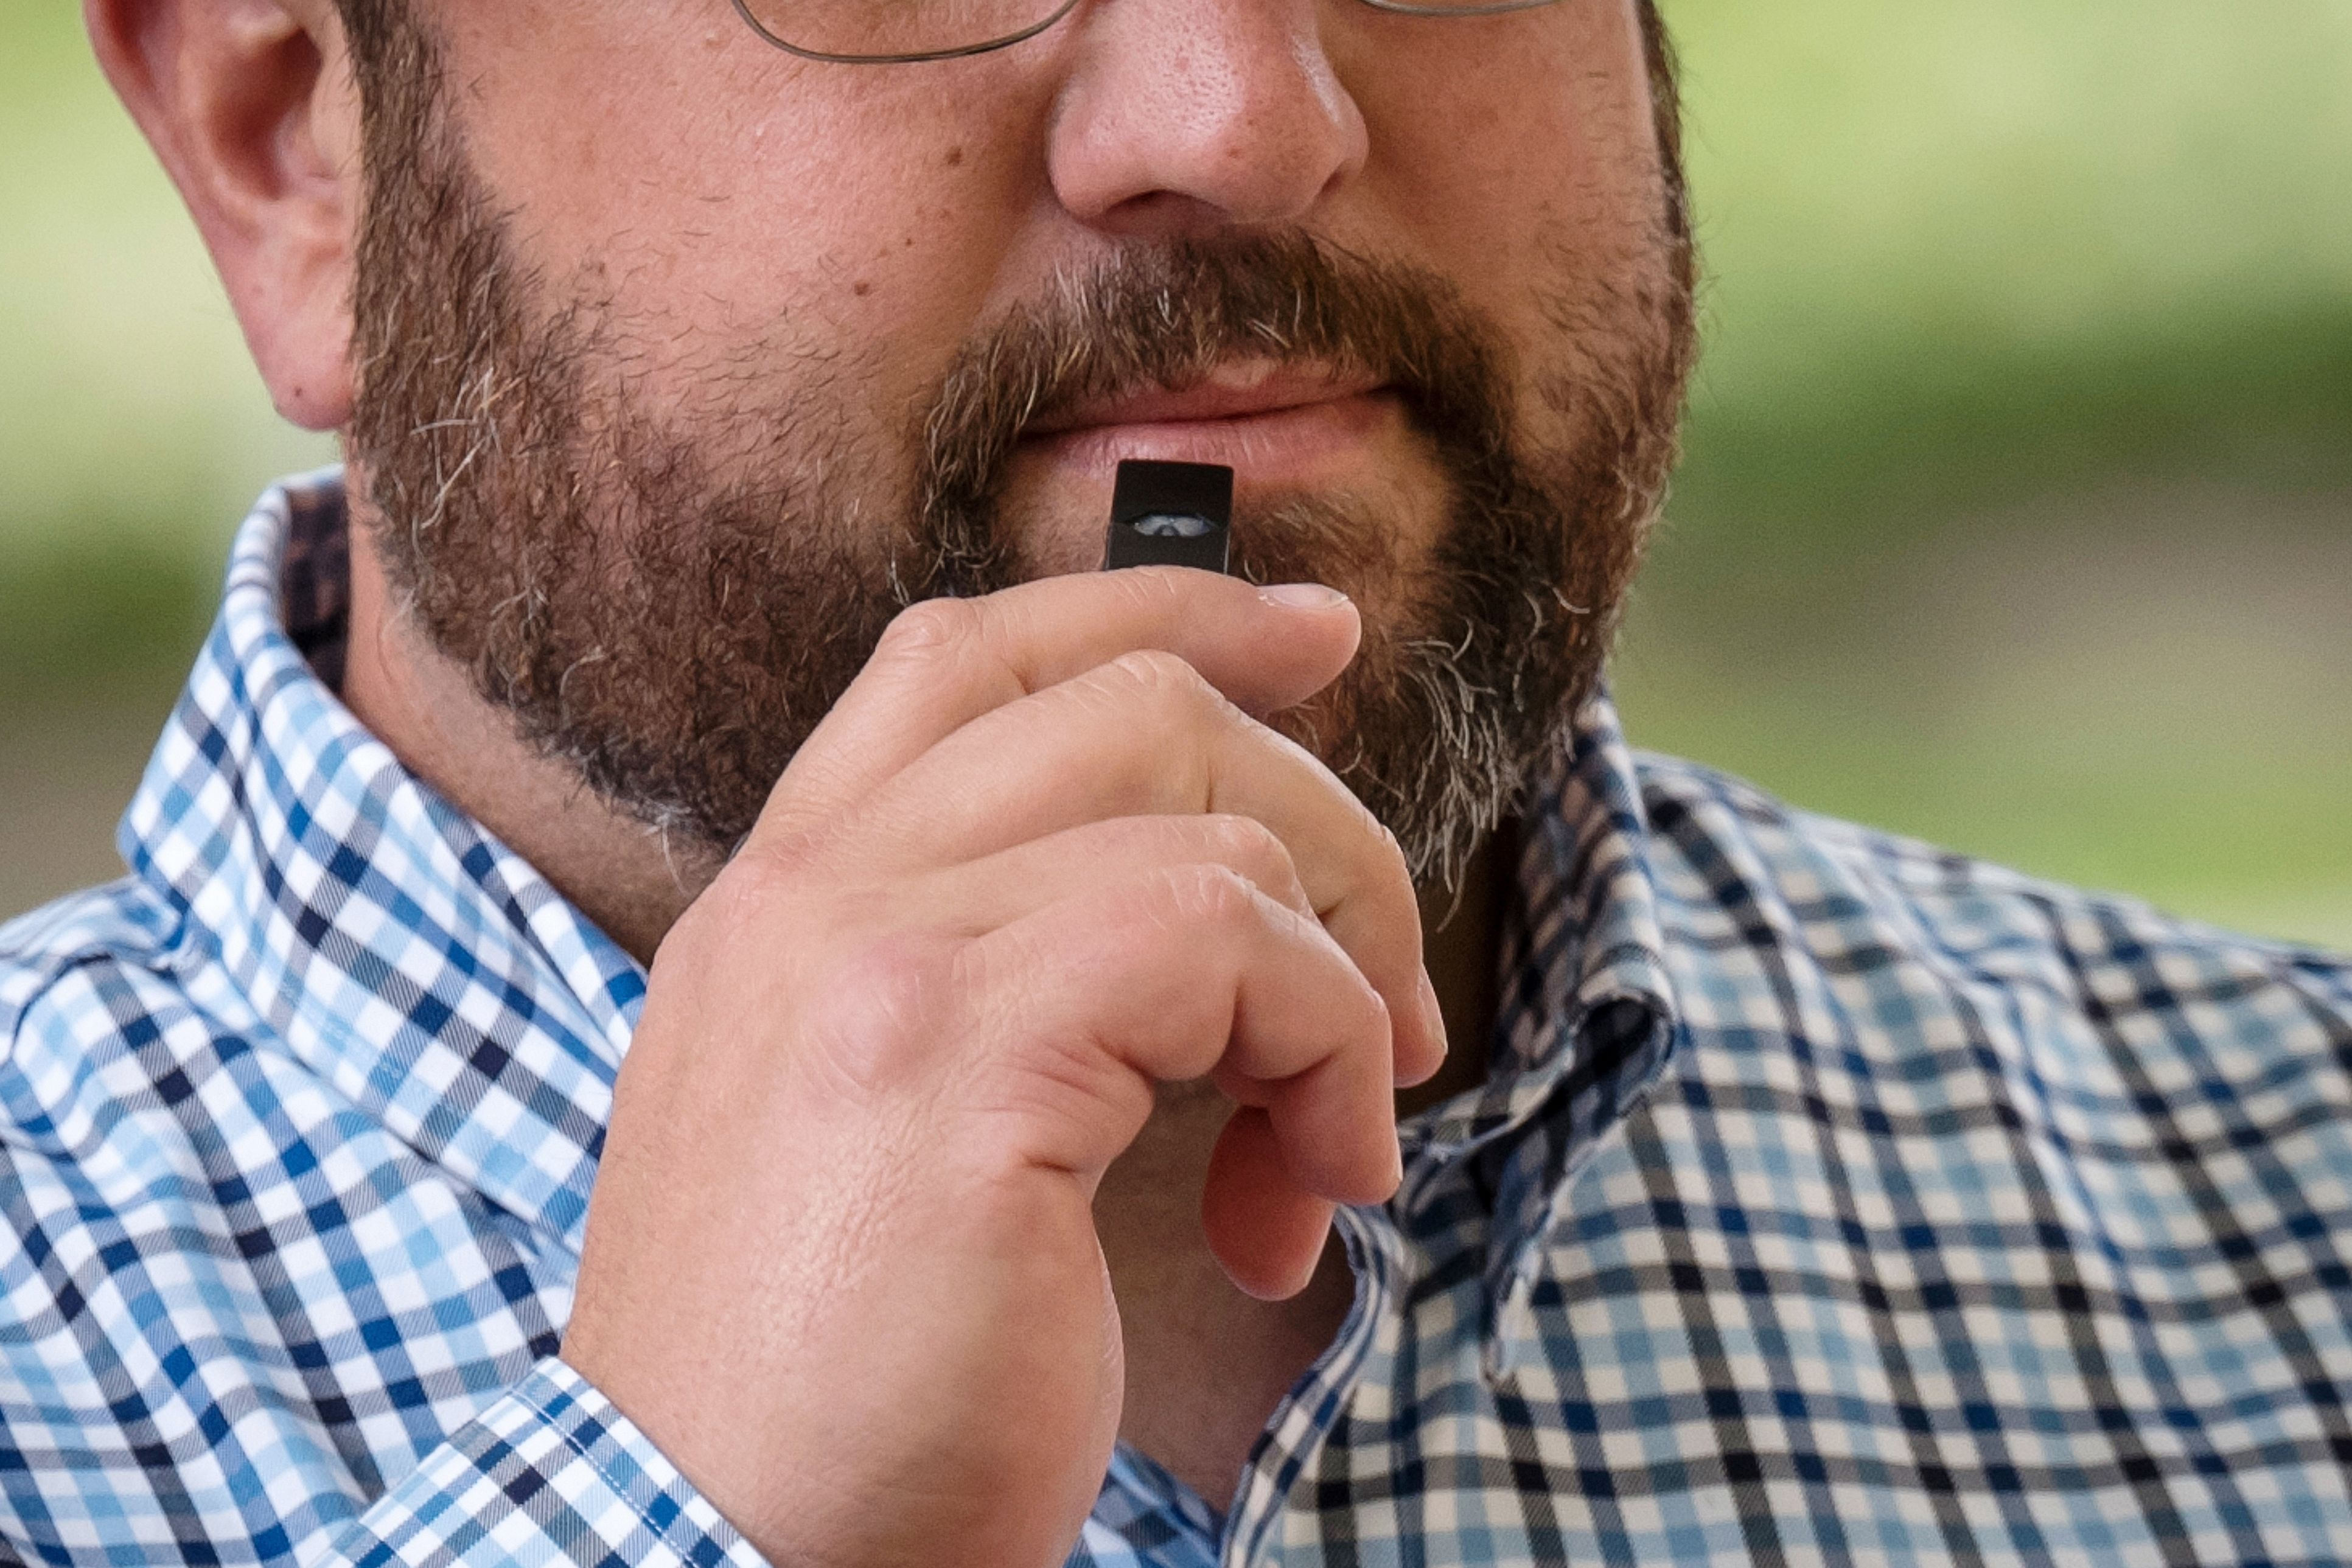 San Francisco bans e-cigarette sales, becoming the first city to do so